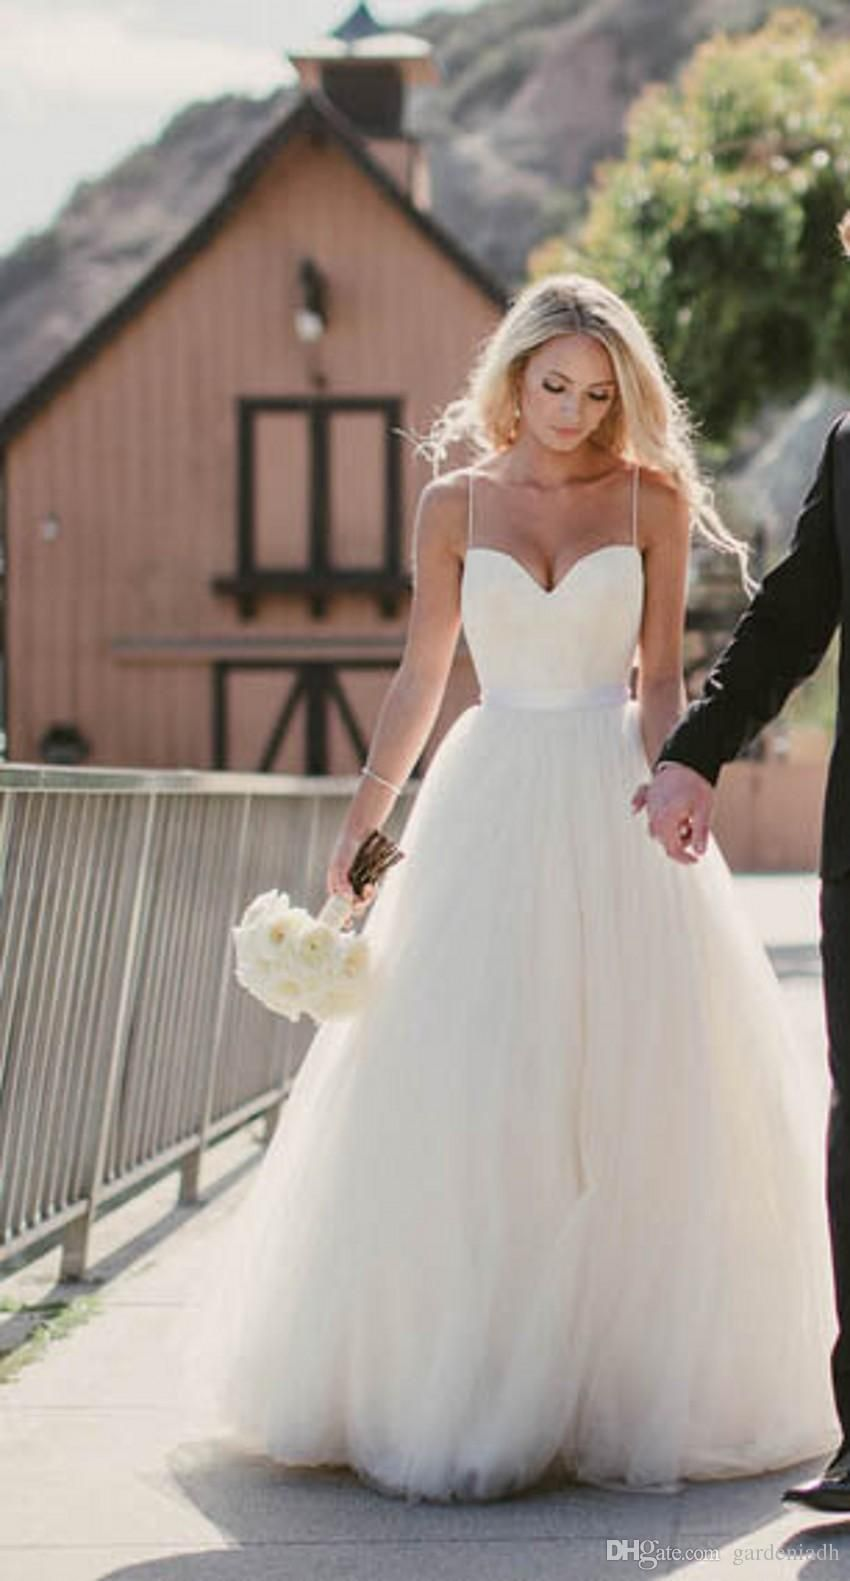 Beach Wedding Dresses 2015 New Sweetheart With Lace Corset Bodice Spaghetti Straps Tulle Bridal Gowns Discount Sale Princess Country: Lace Corset Wedding Dresses Cheap At Websimilar.org